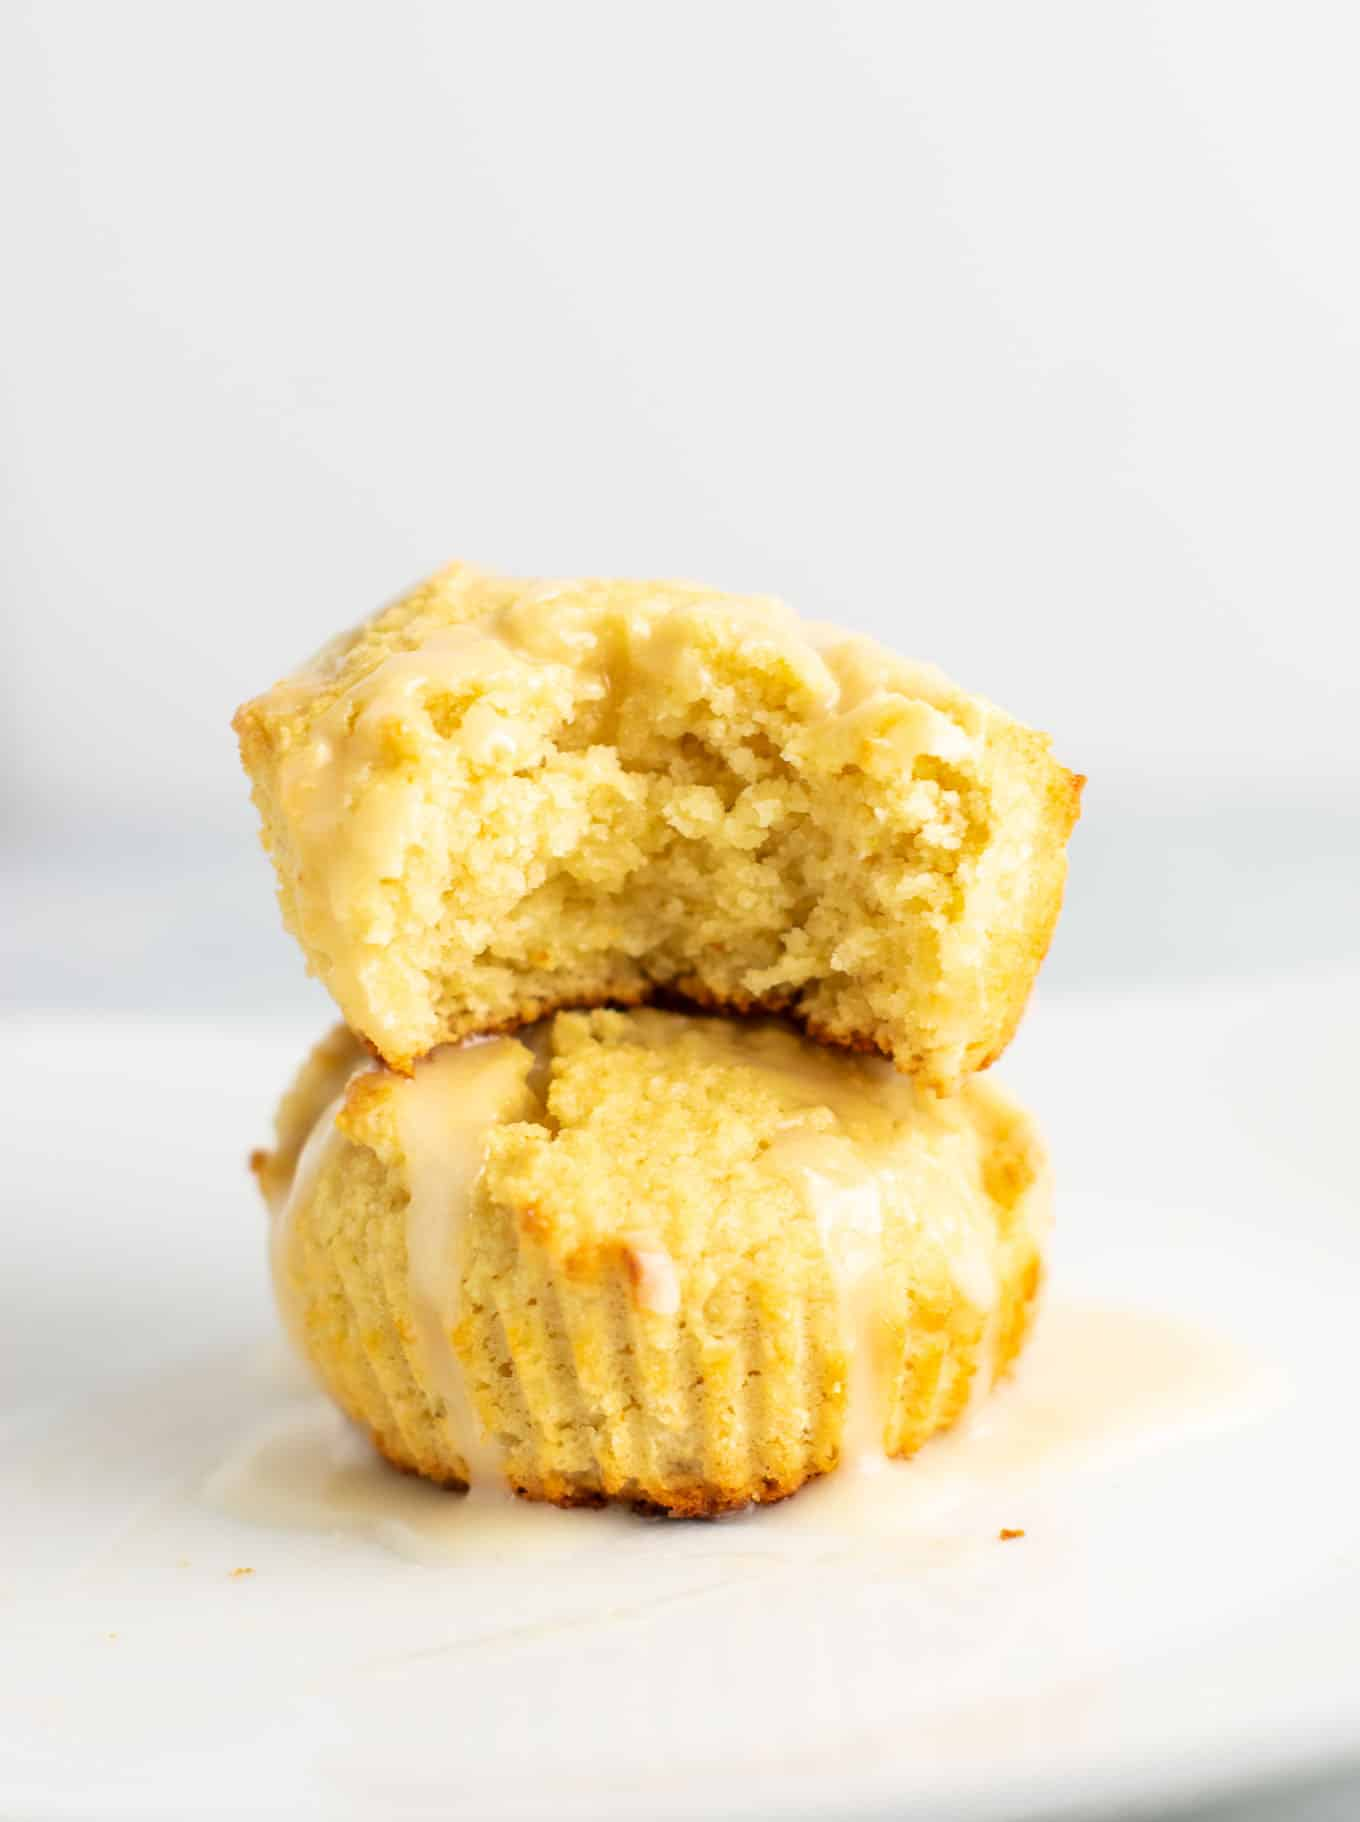 Gluten free lemon muffins with a sweet lemon glaze. These are perfectly fluffy, do not fall apart, and taste amazing! #glutenfree #lemonmuffins #breakfast